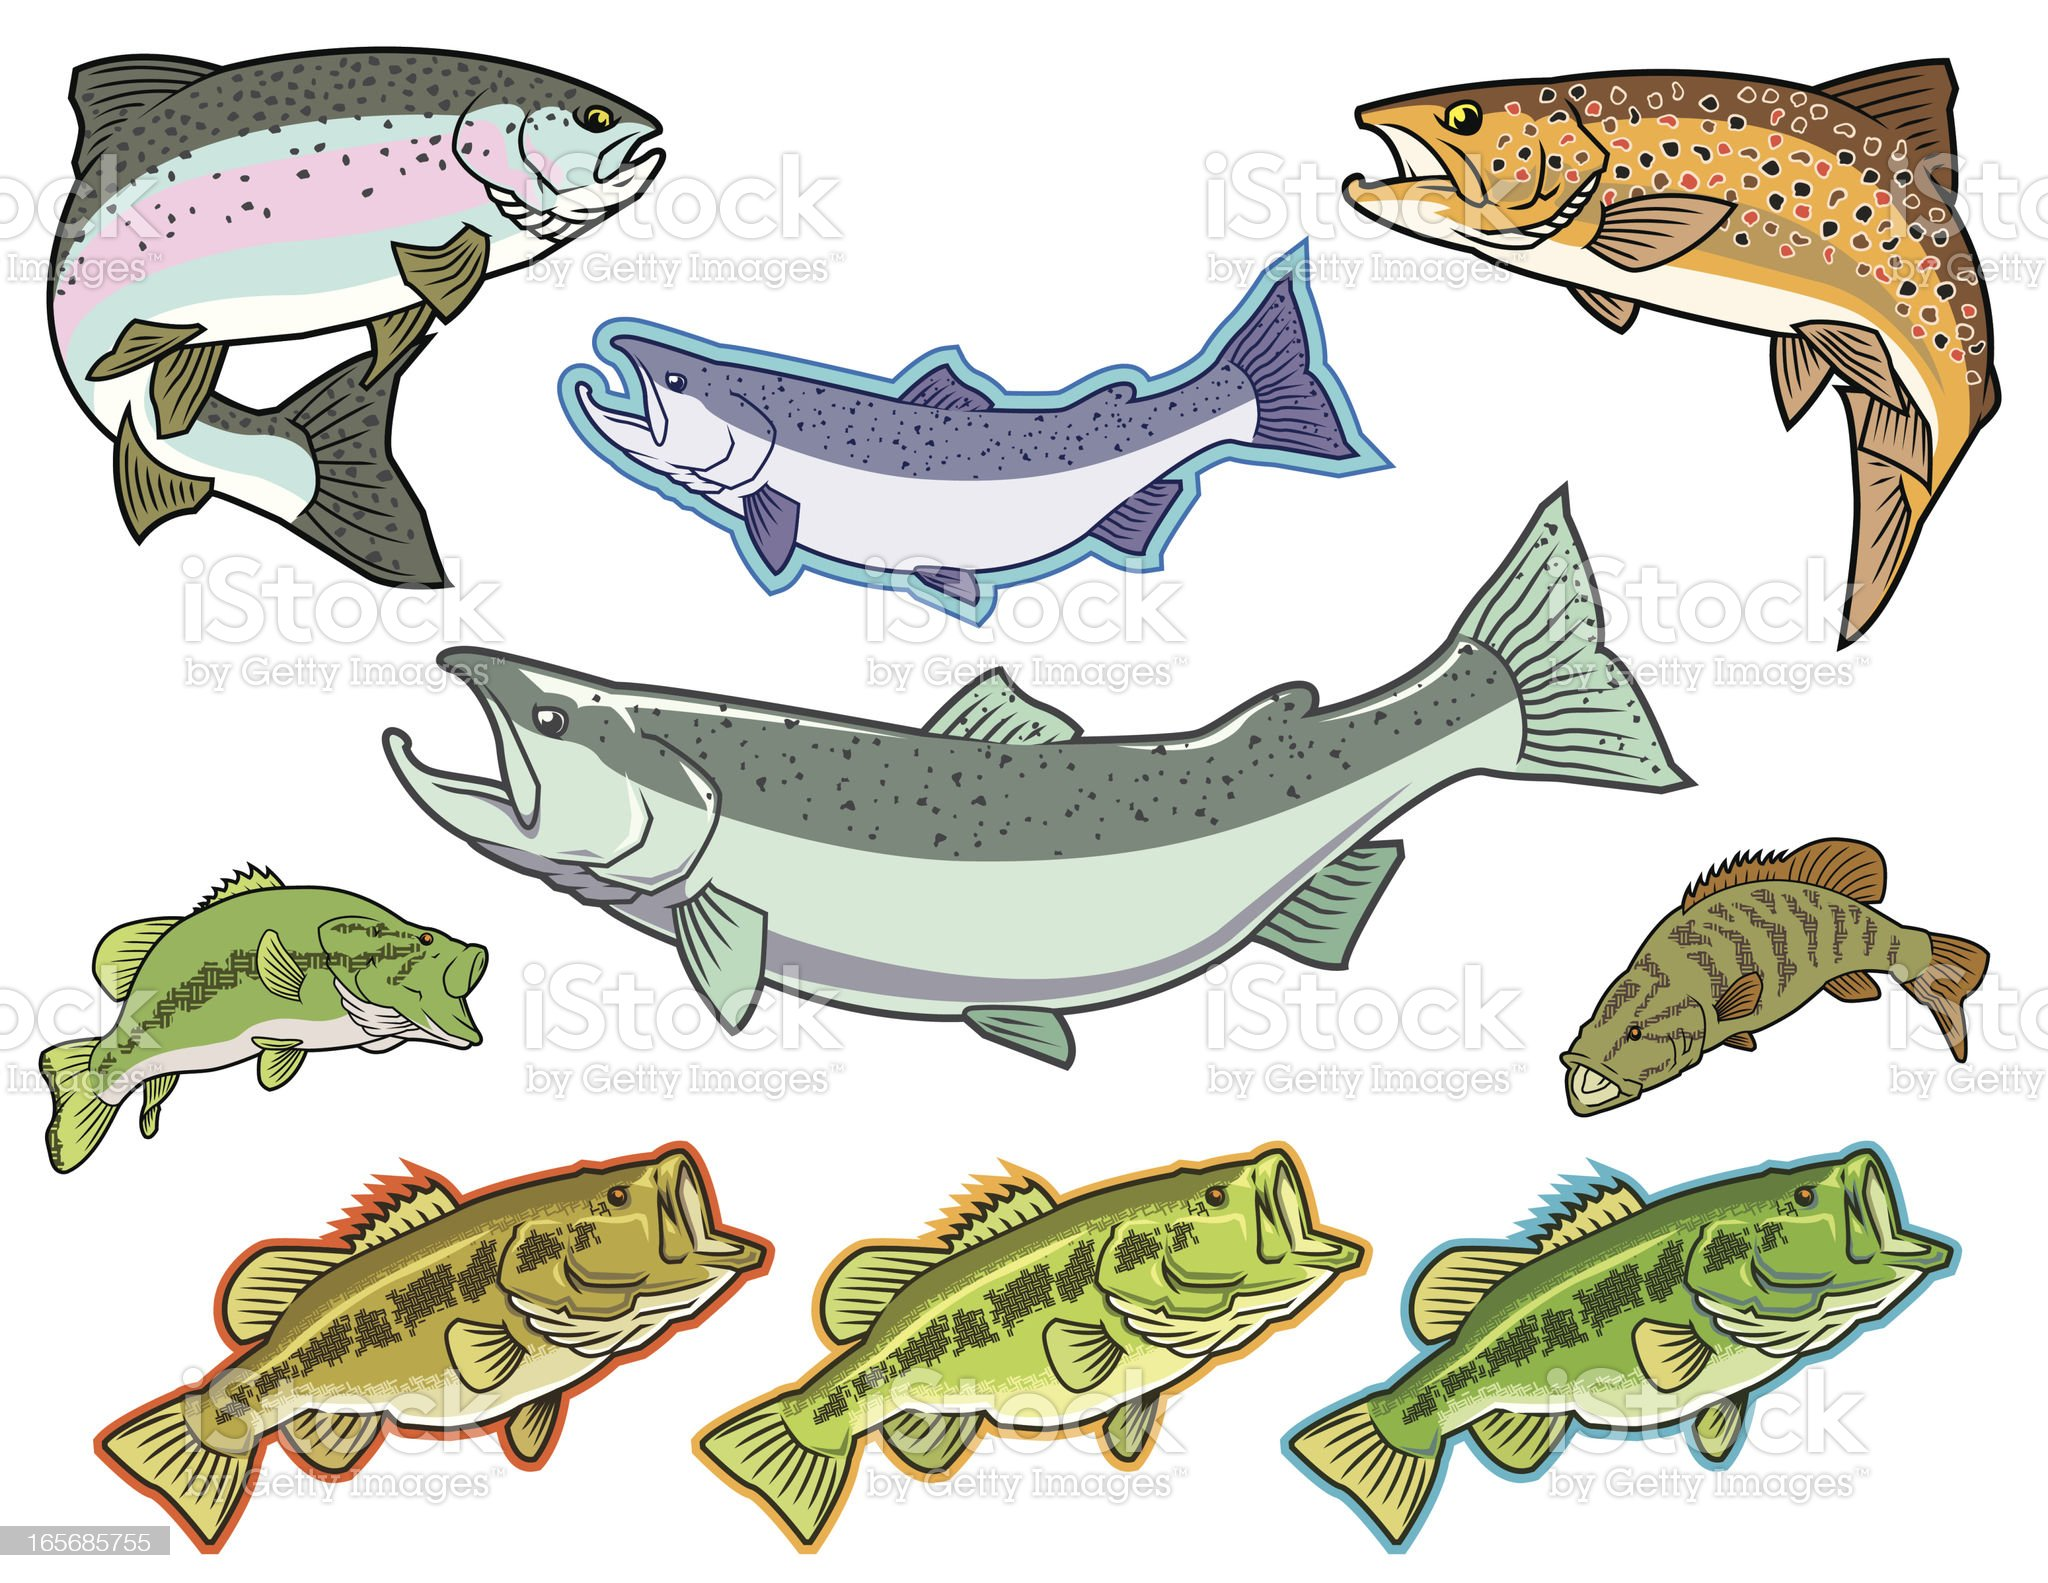 Fish: Bass, Salmon, Trout royalty-free stock vector art